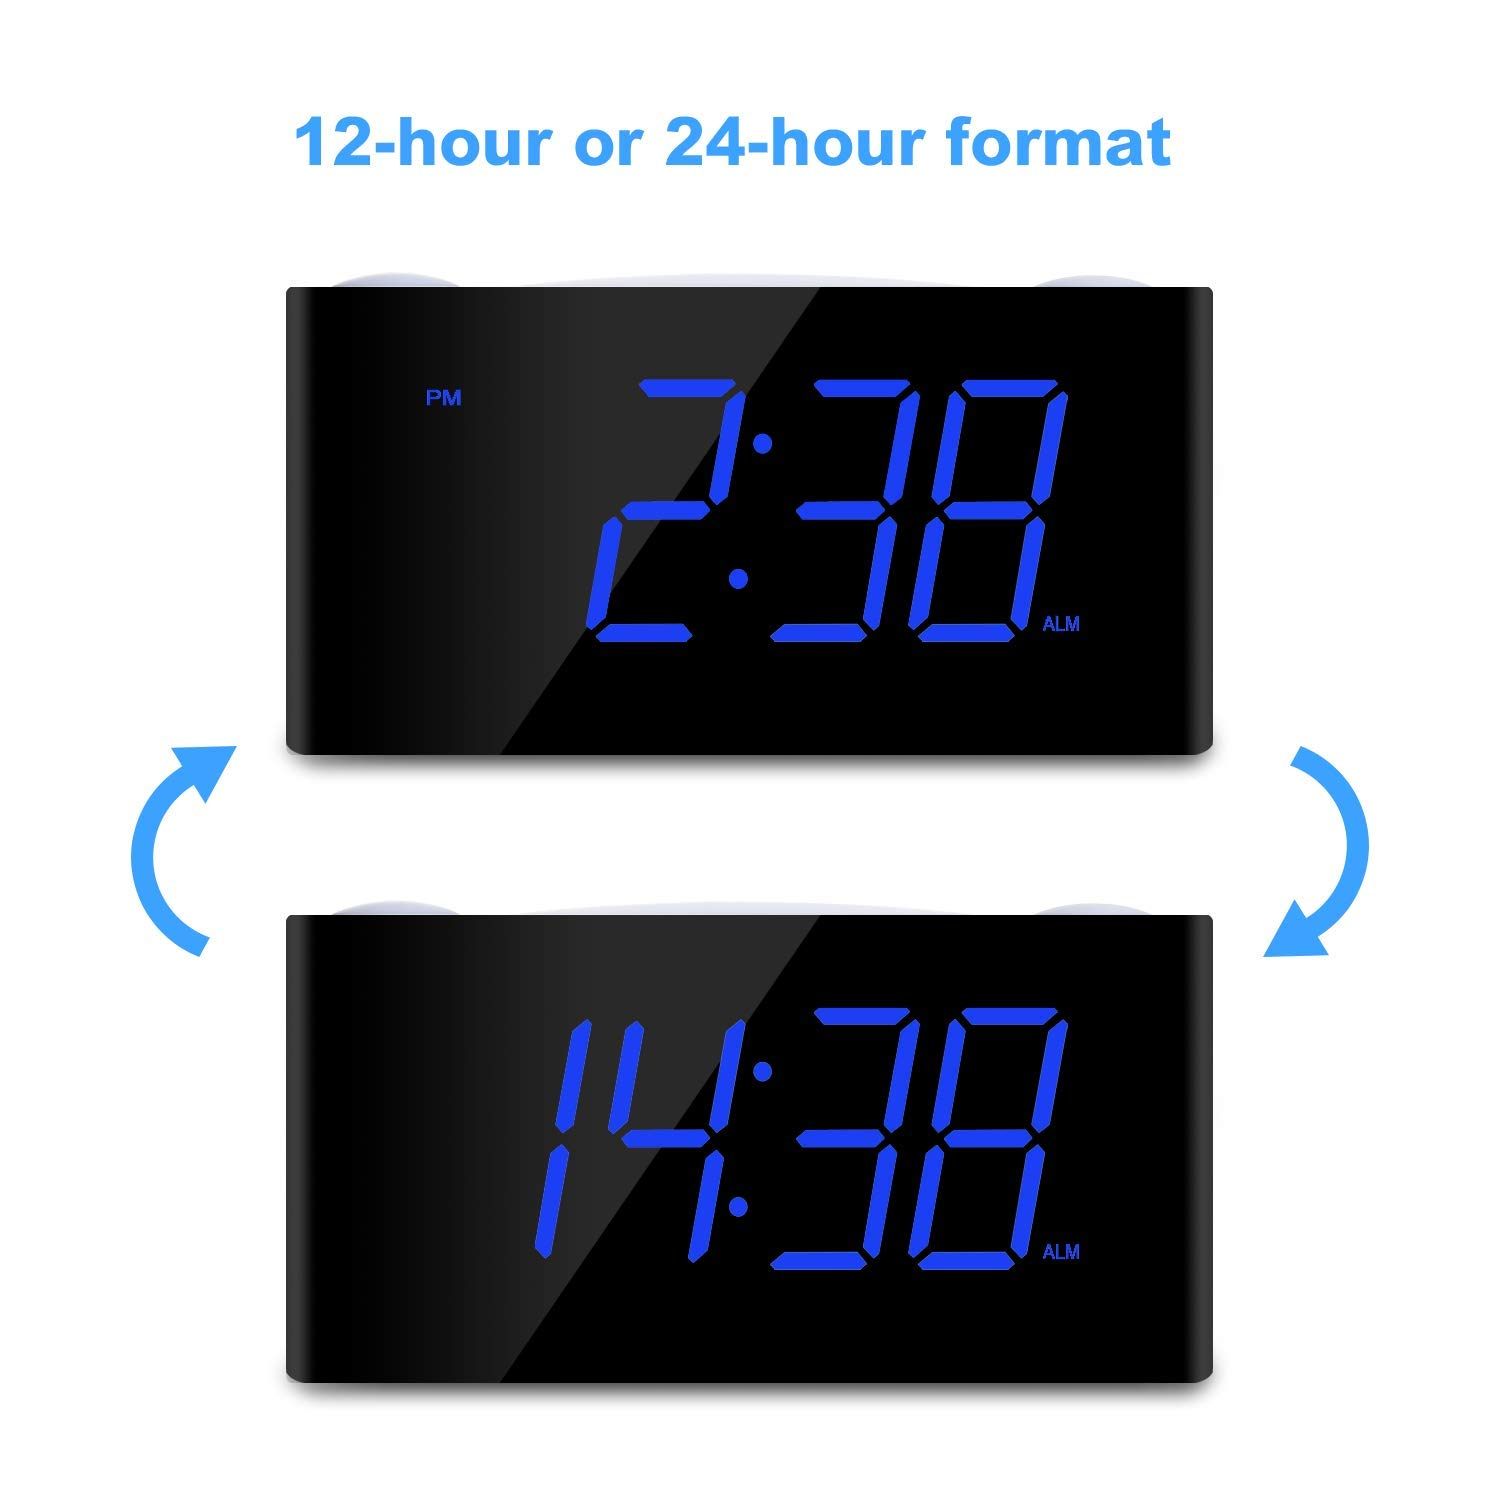 Digital Alarm Clock - Raynic Desk Clock with Loud Alarm, Large Numbers, Snooze, Dual USB Charging Ports, Brightness Dimmer, 12/24 Hours, Nightlight for Bedrooms, Kids, Heavy Sleepers, Home, Blue